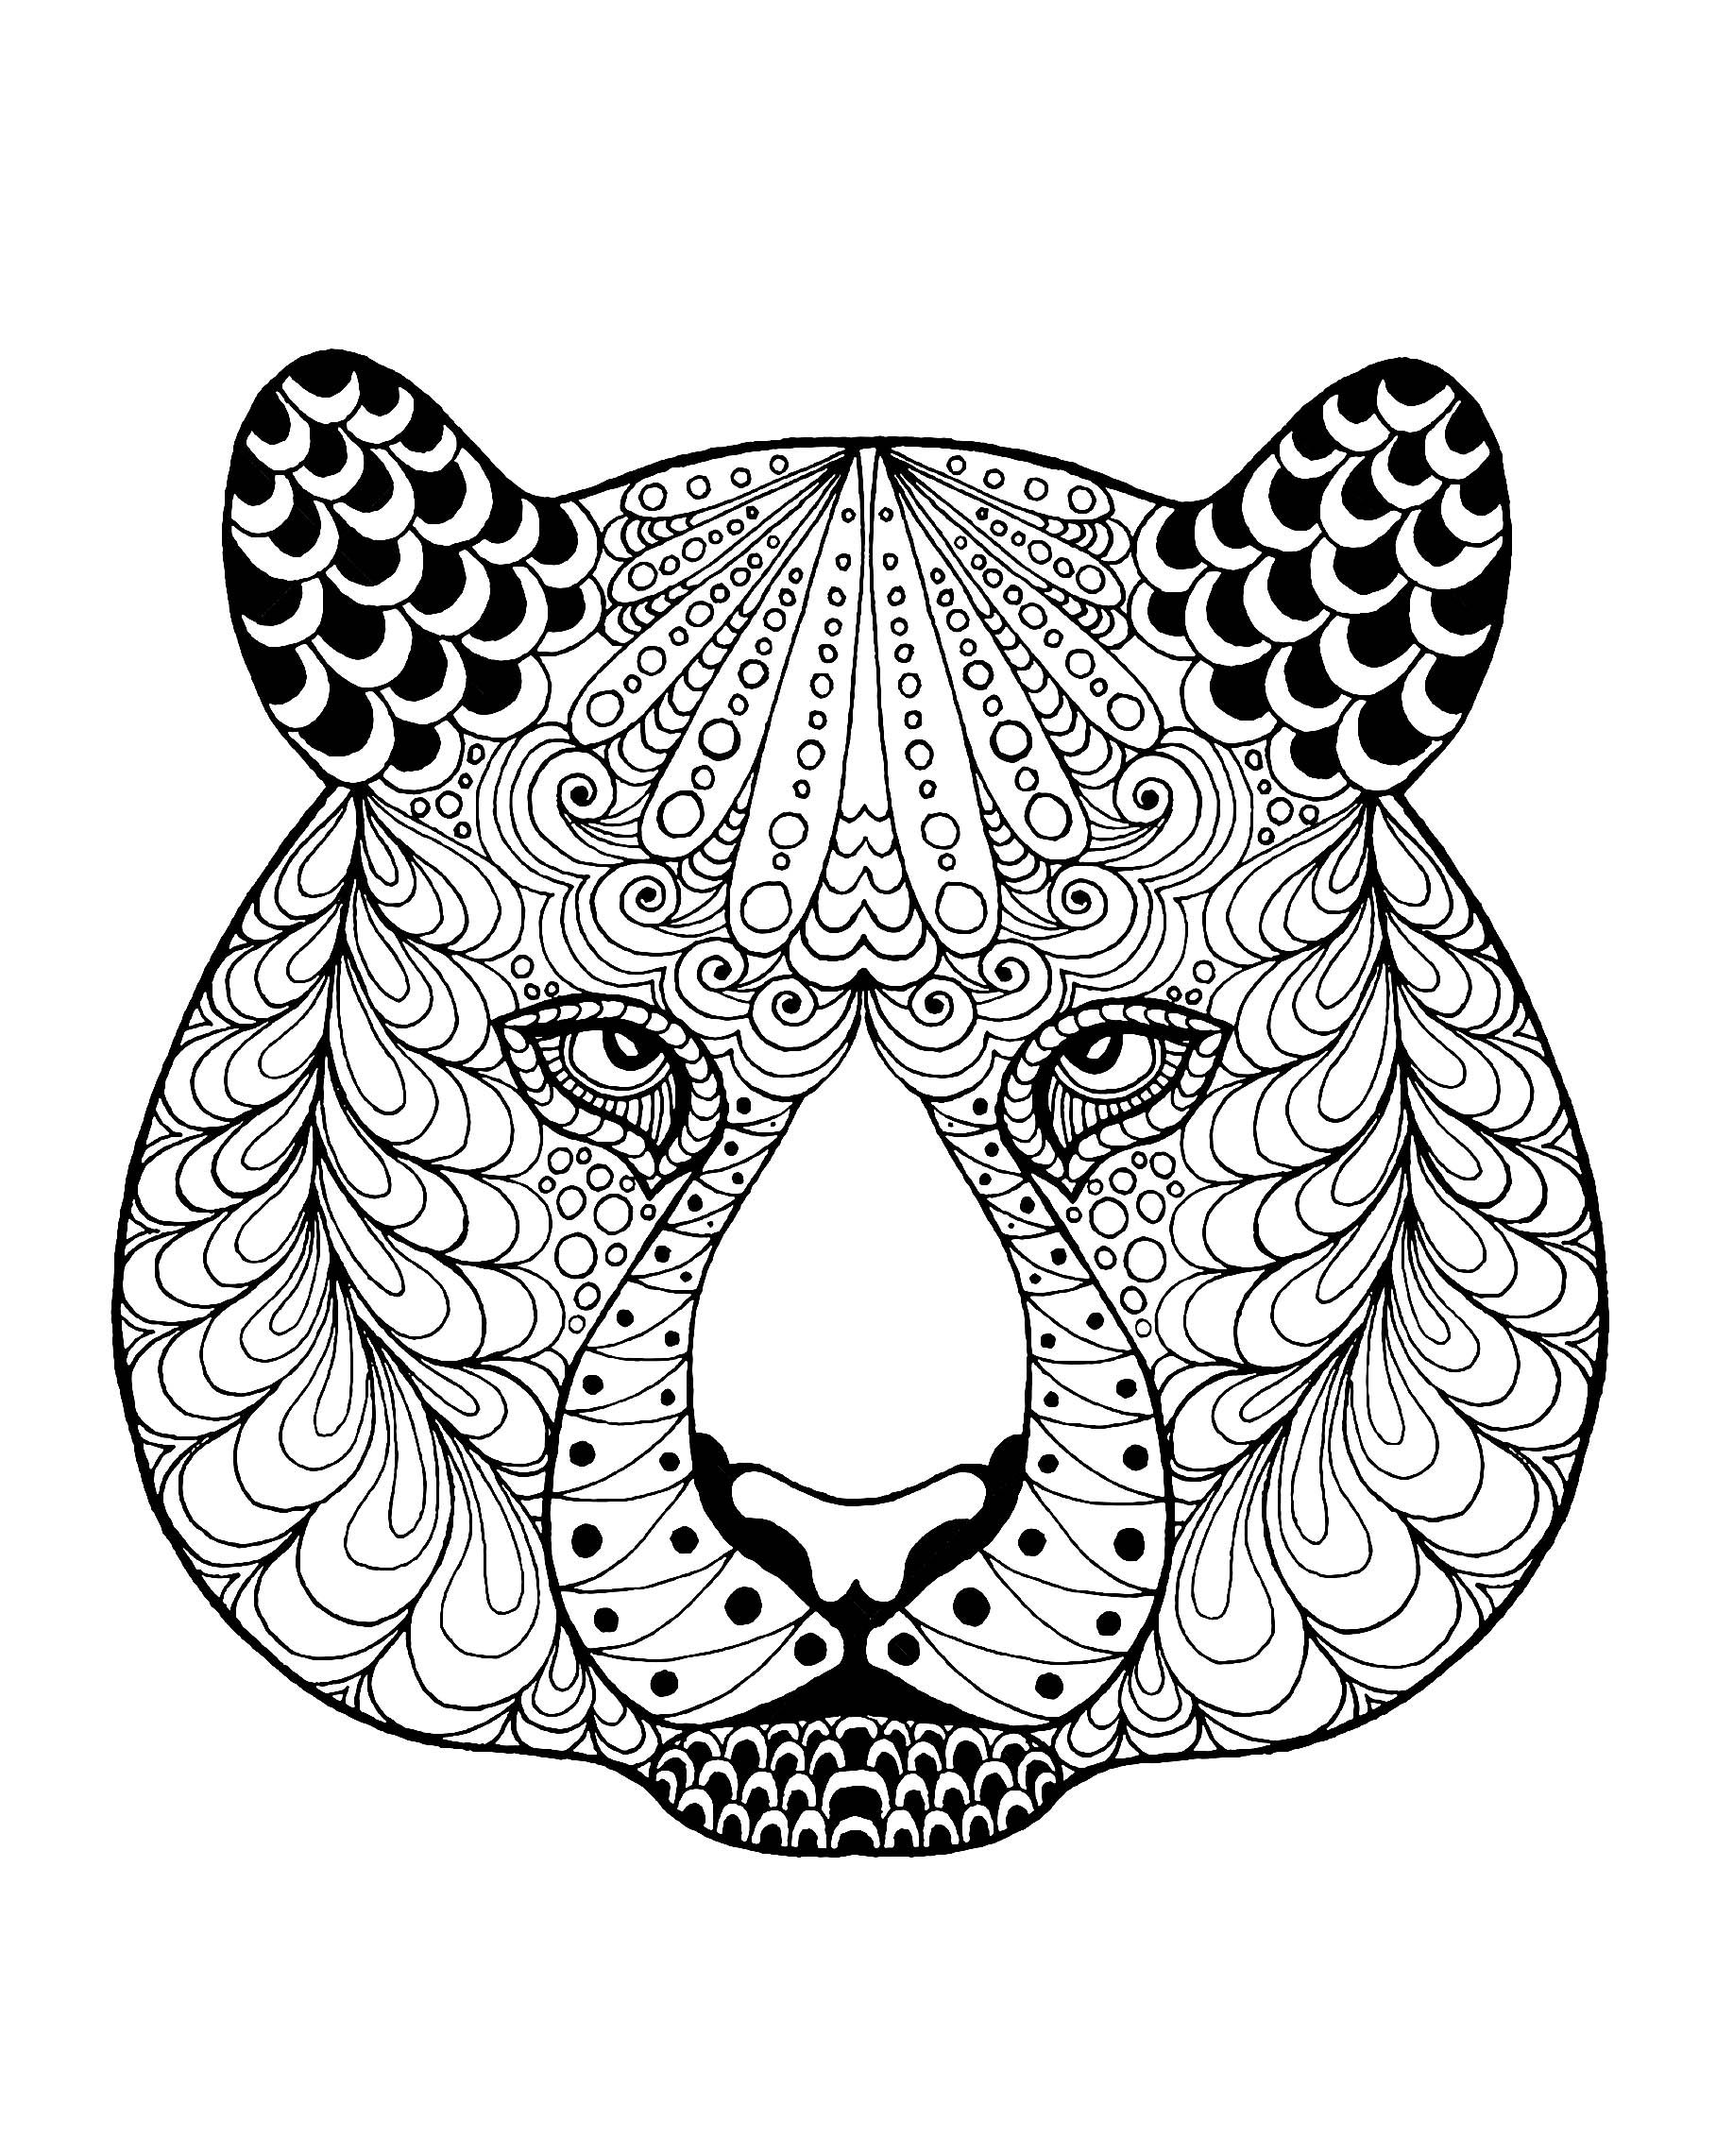 Tiger Head With Patterns Tigers Coloring Pages For Adults Just